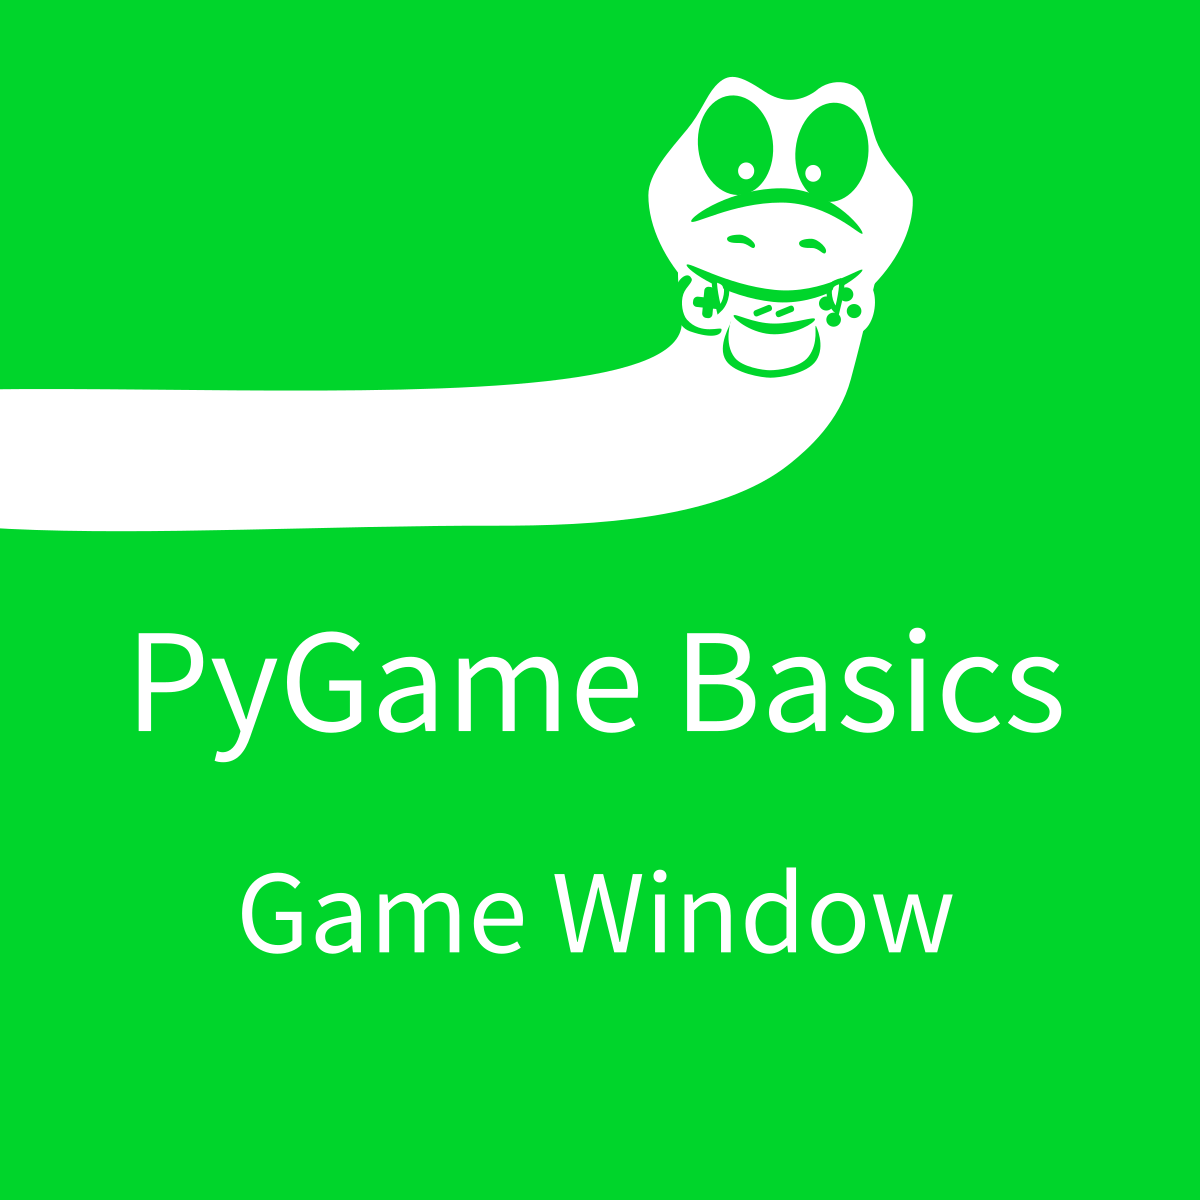 PyGame Basics: Game Window